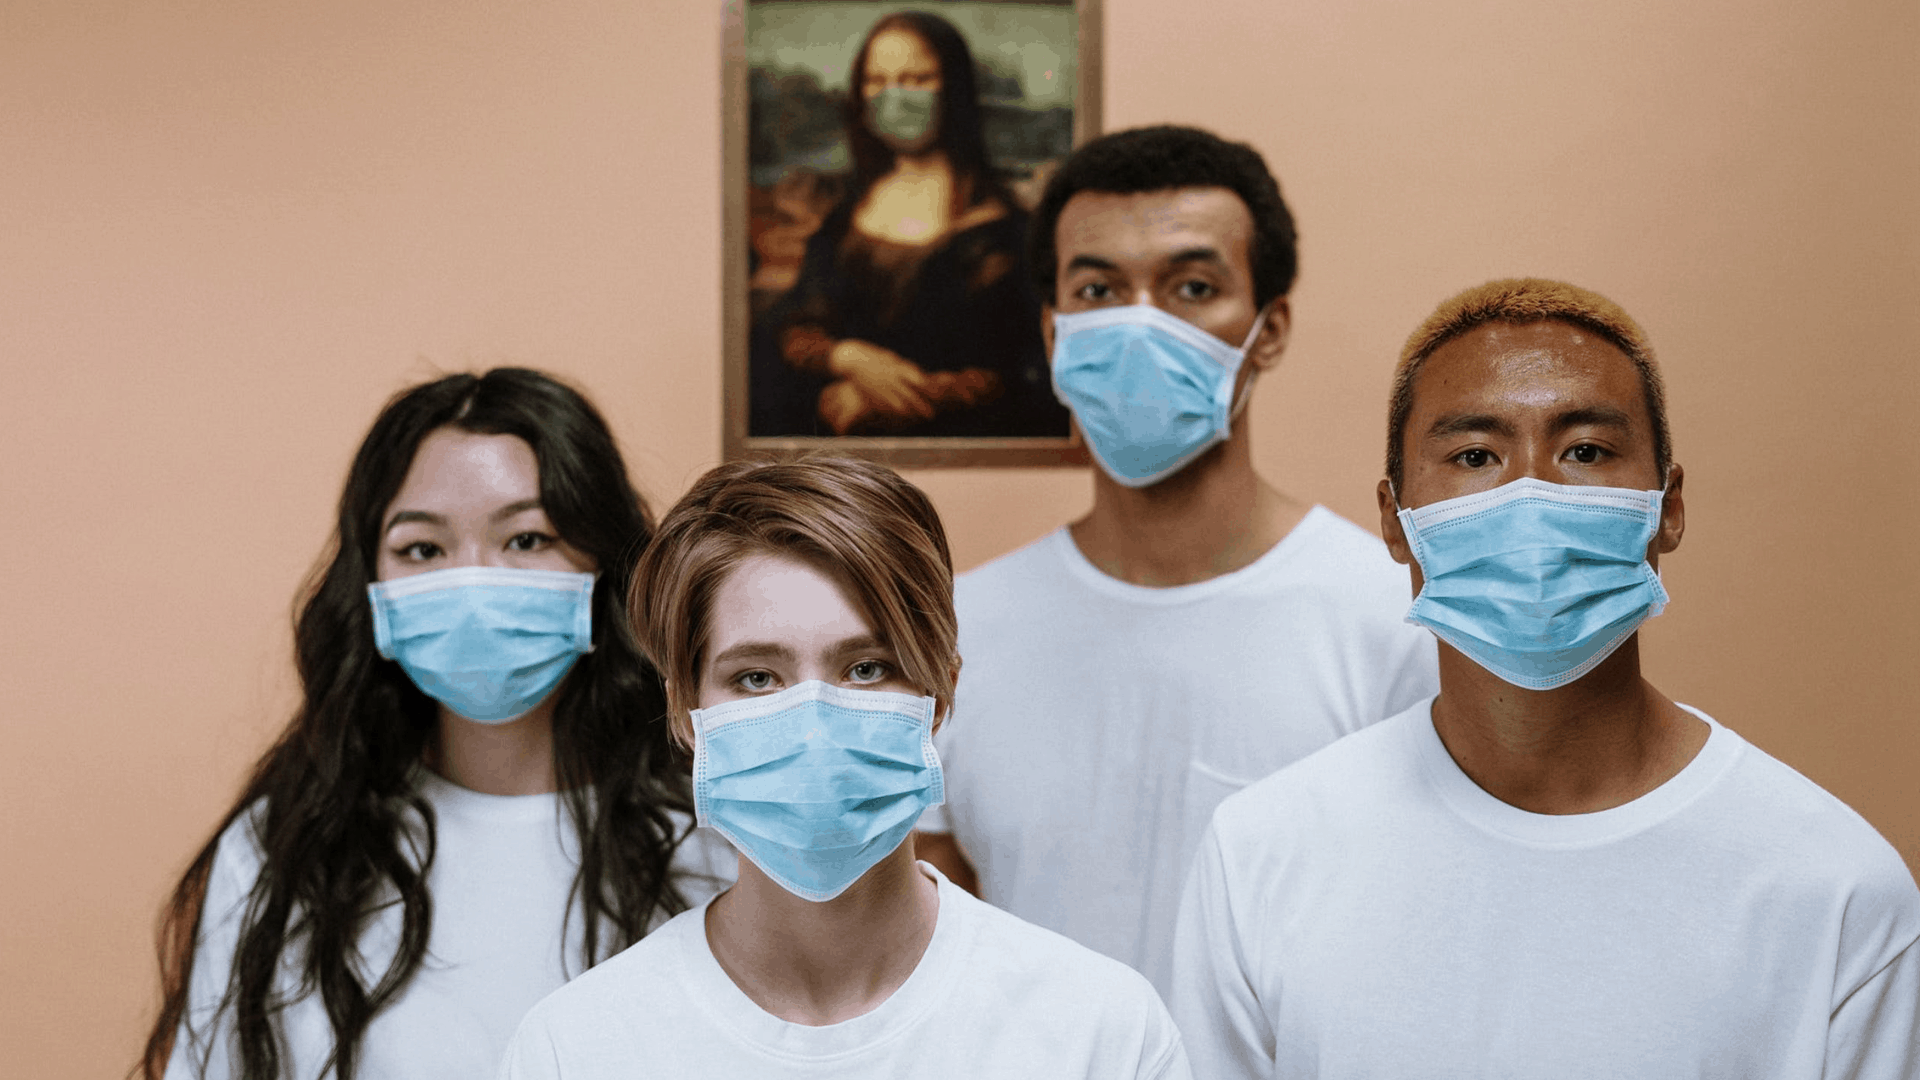 Young People in face masks